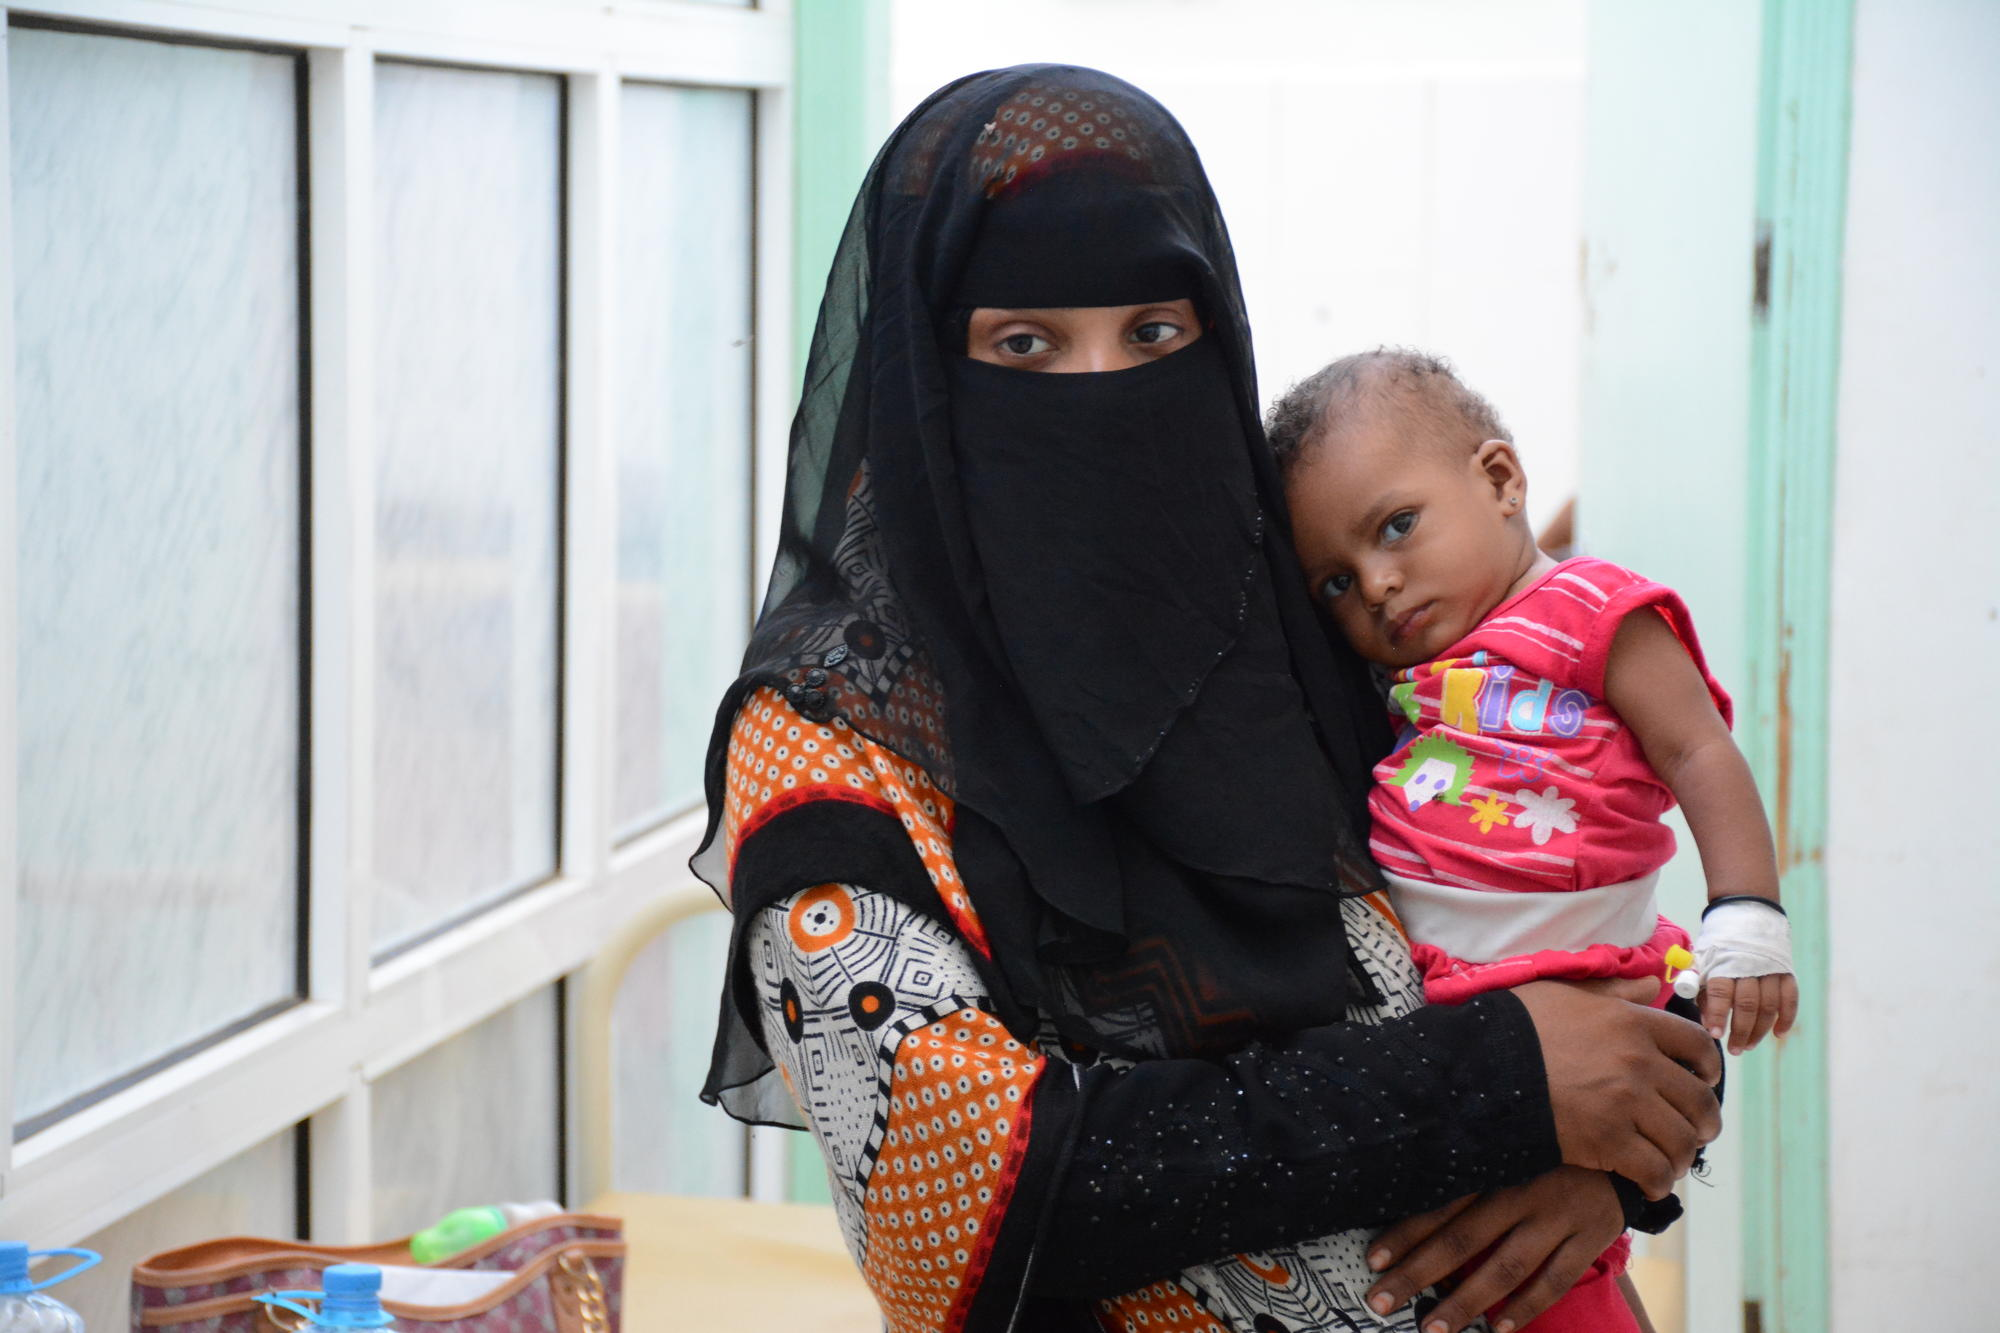 Help us provide essential medical care to people in Yemen